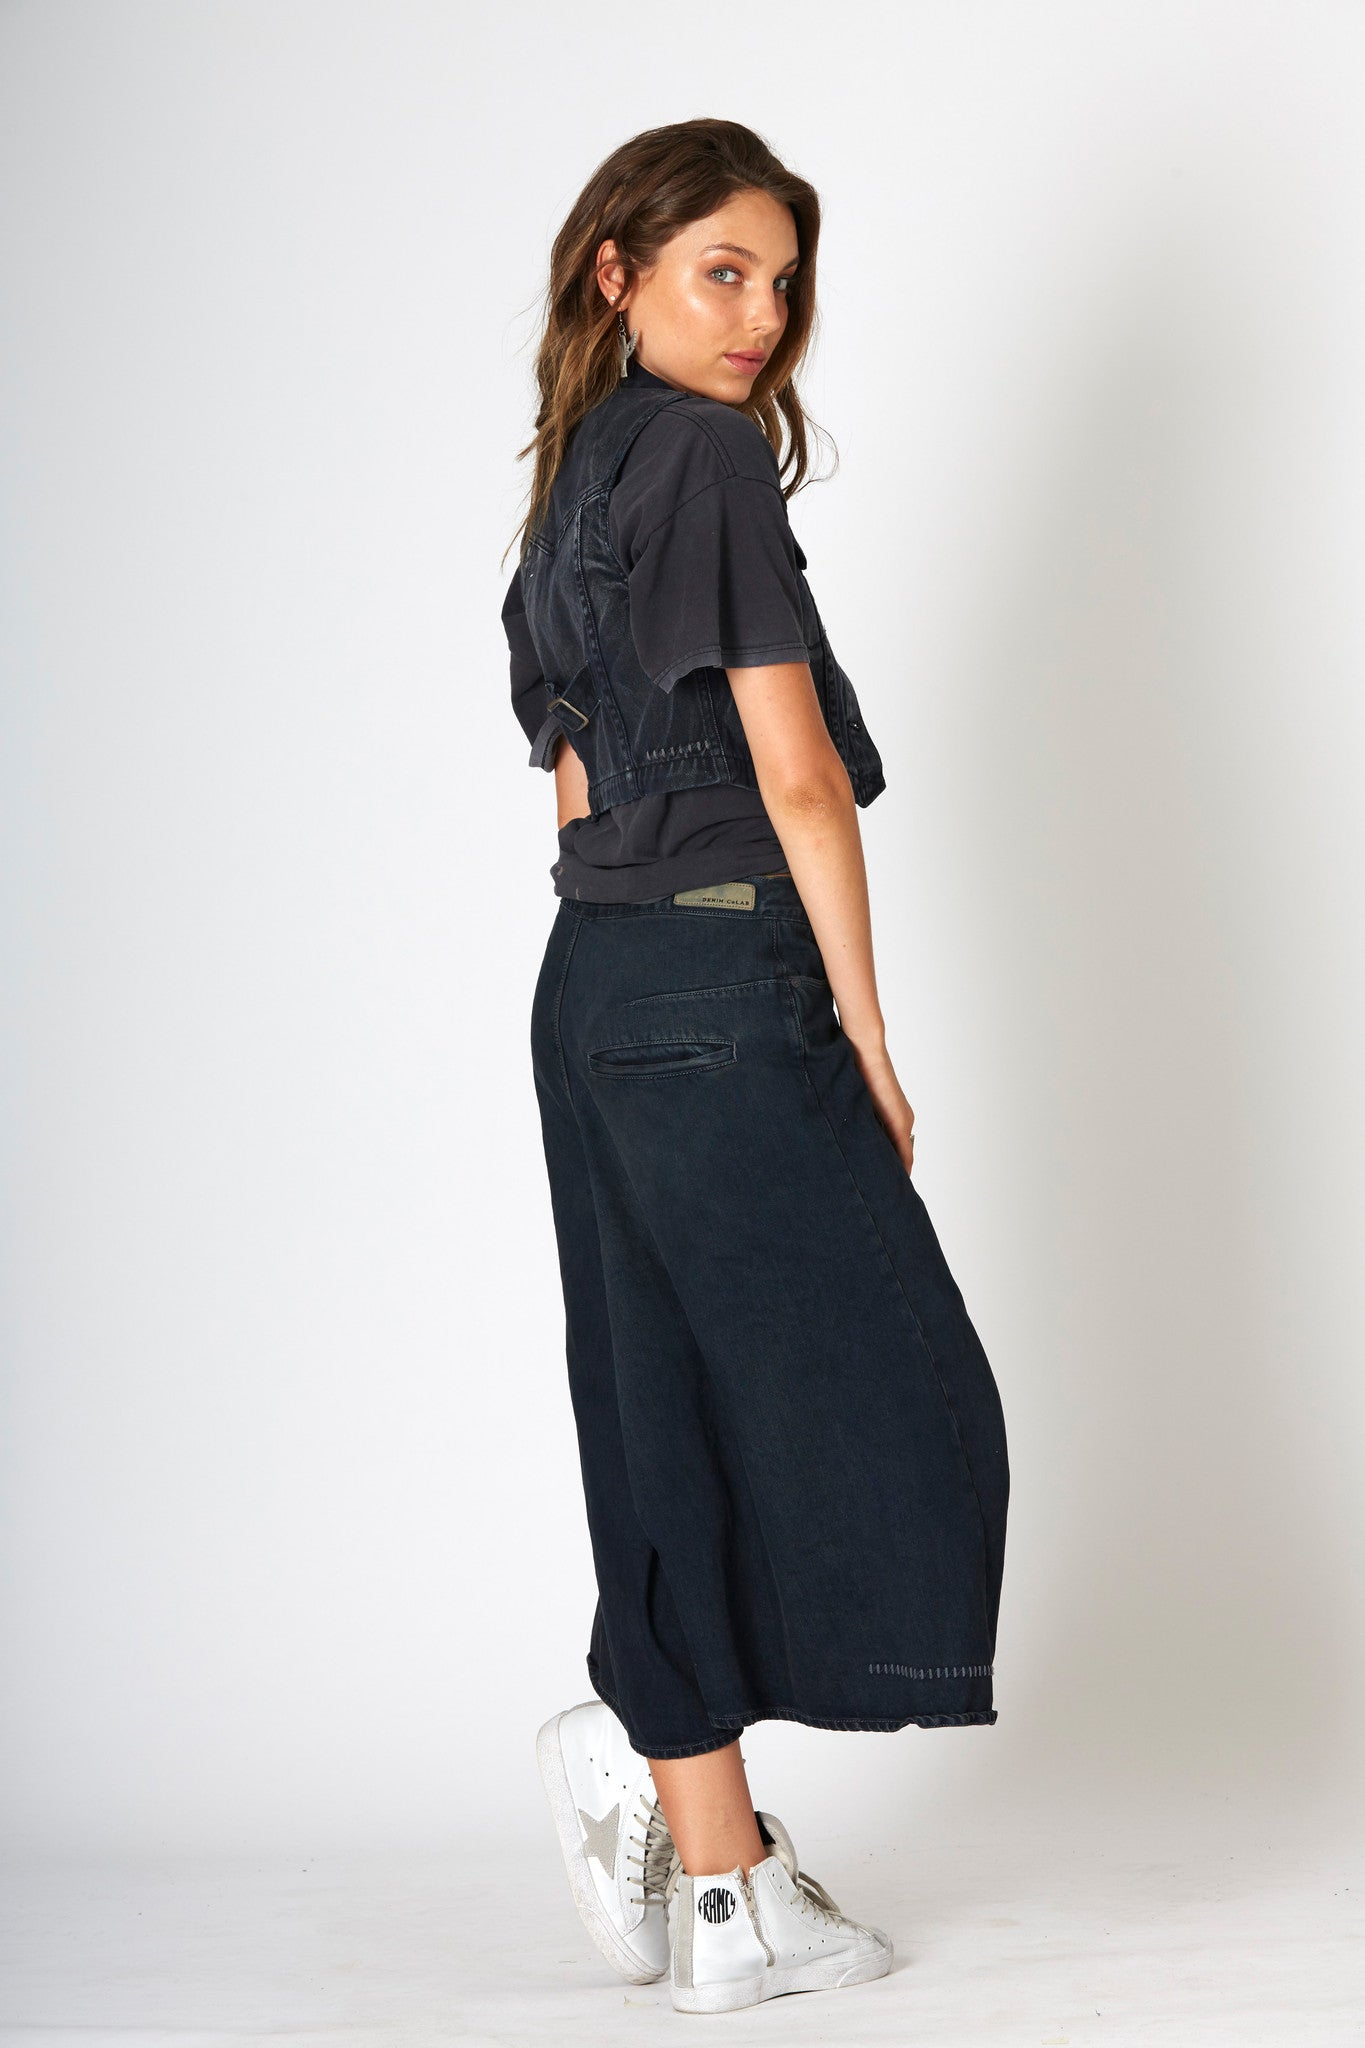 #3B10 Four Mile Culotte Dark Indigo - denimcolab